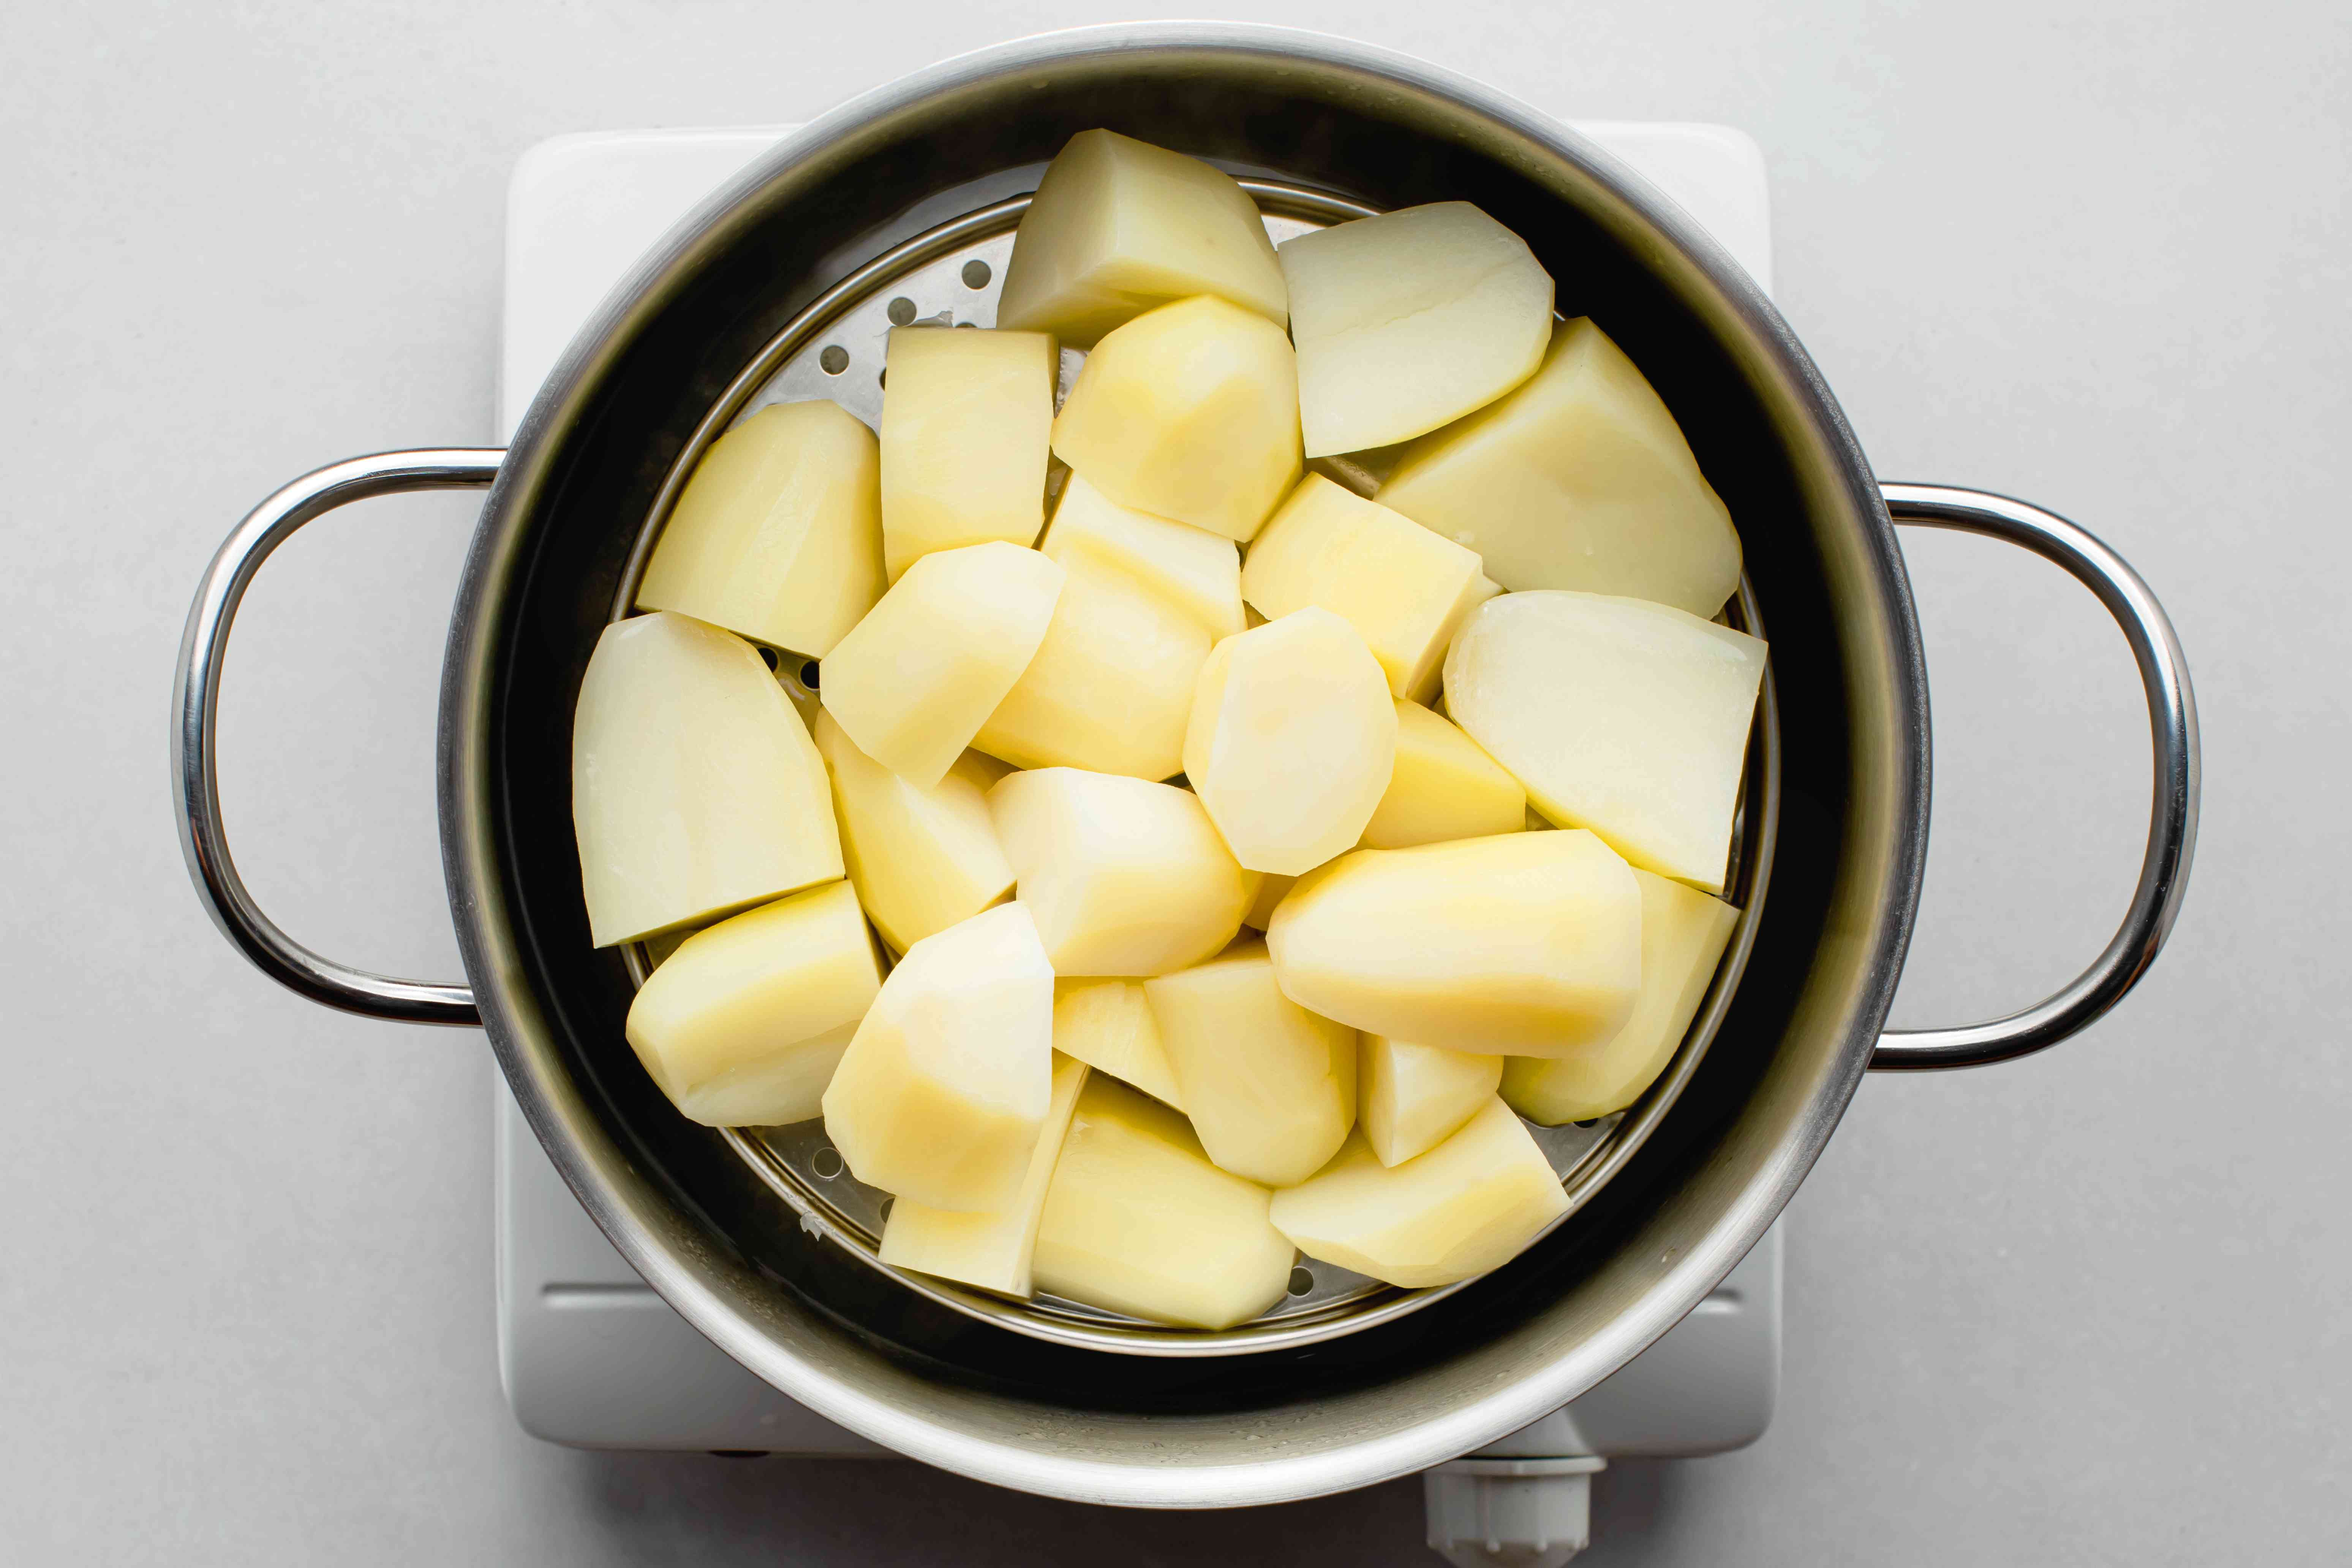 Potatoes steaming in a pot with a steamer insert